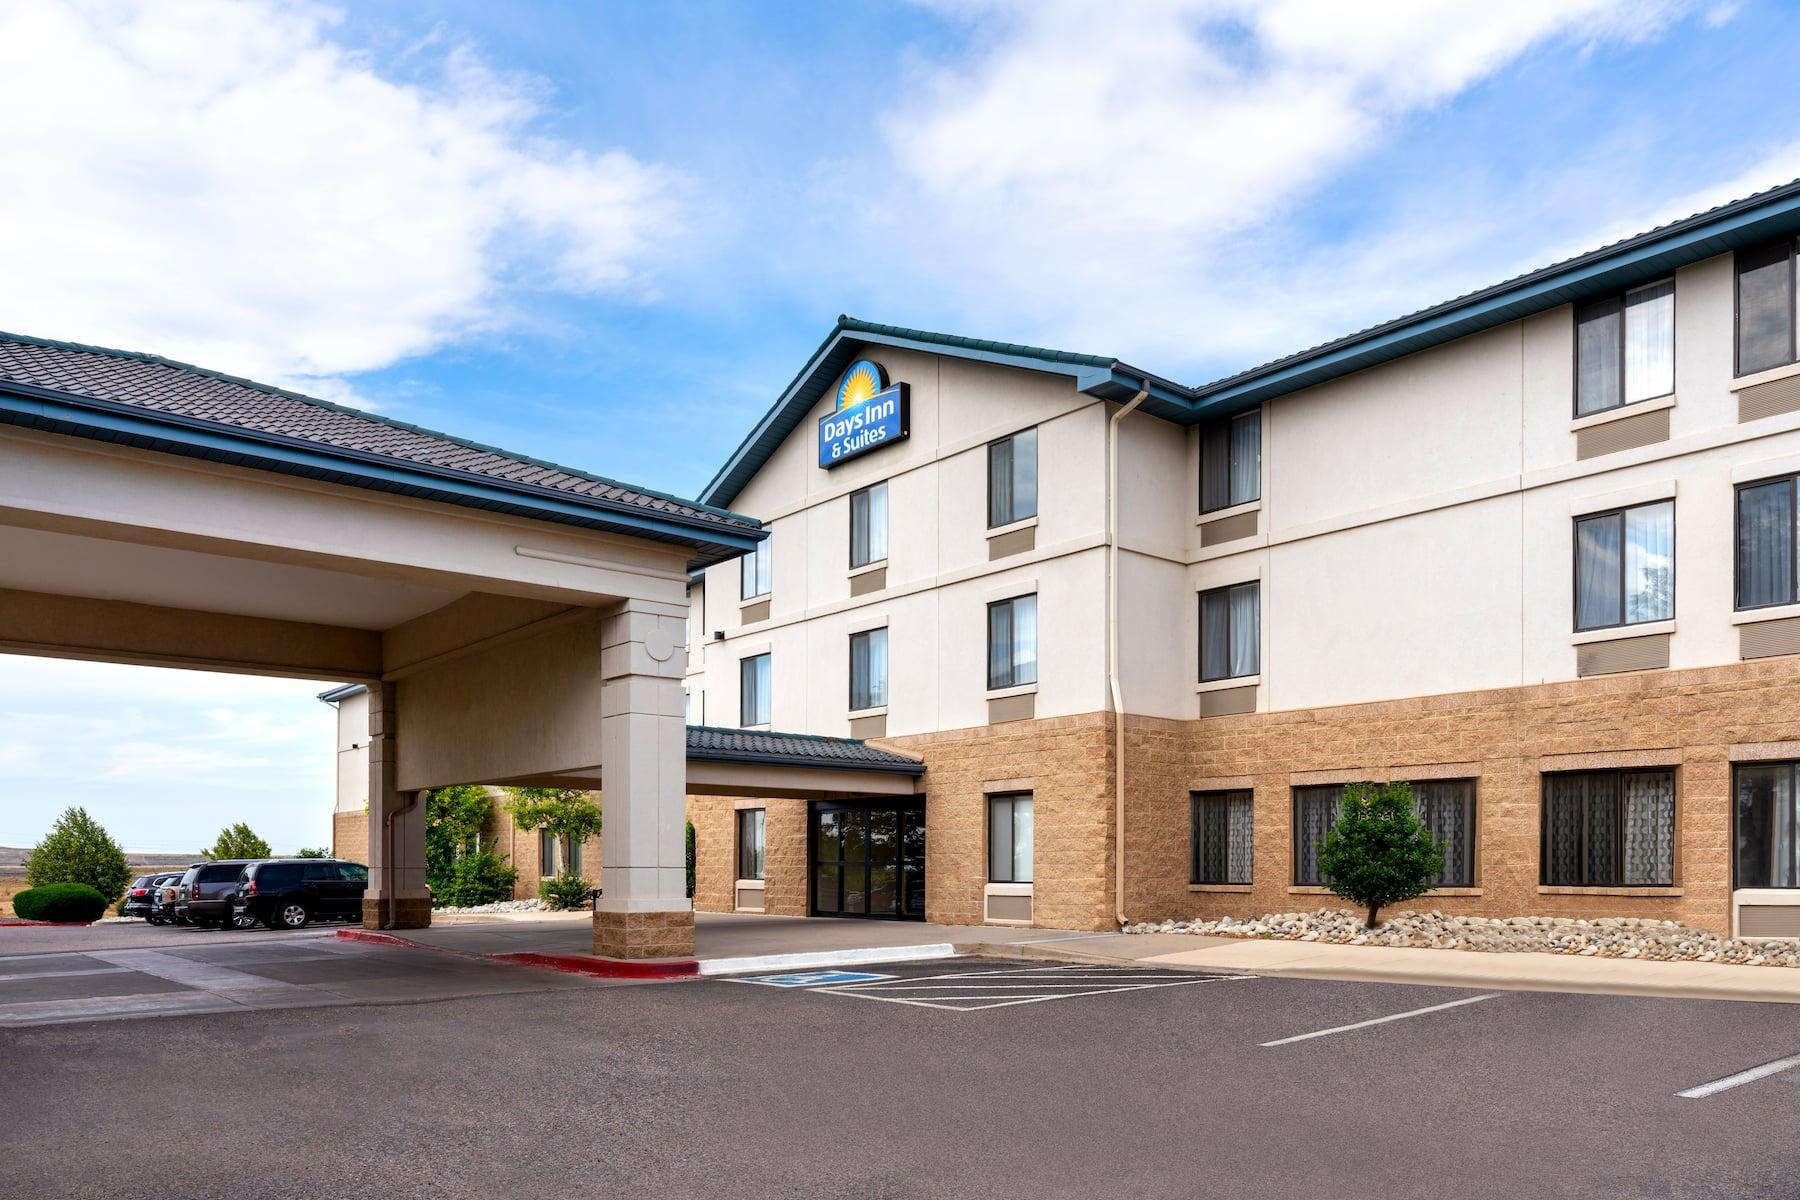 Days Inn & Suites by Wyndham Denver International Airport